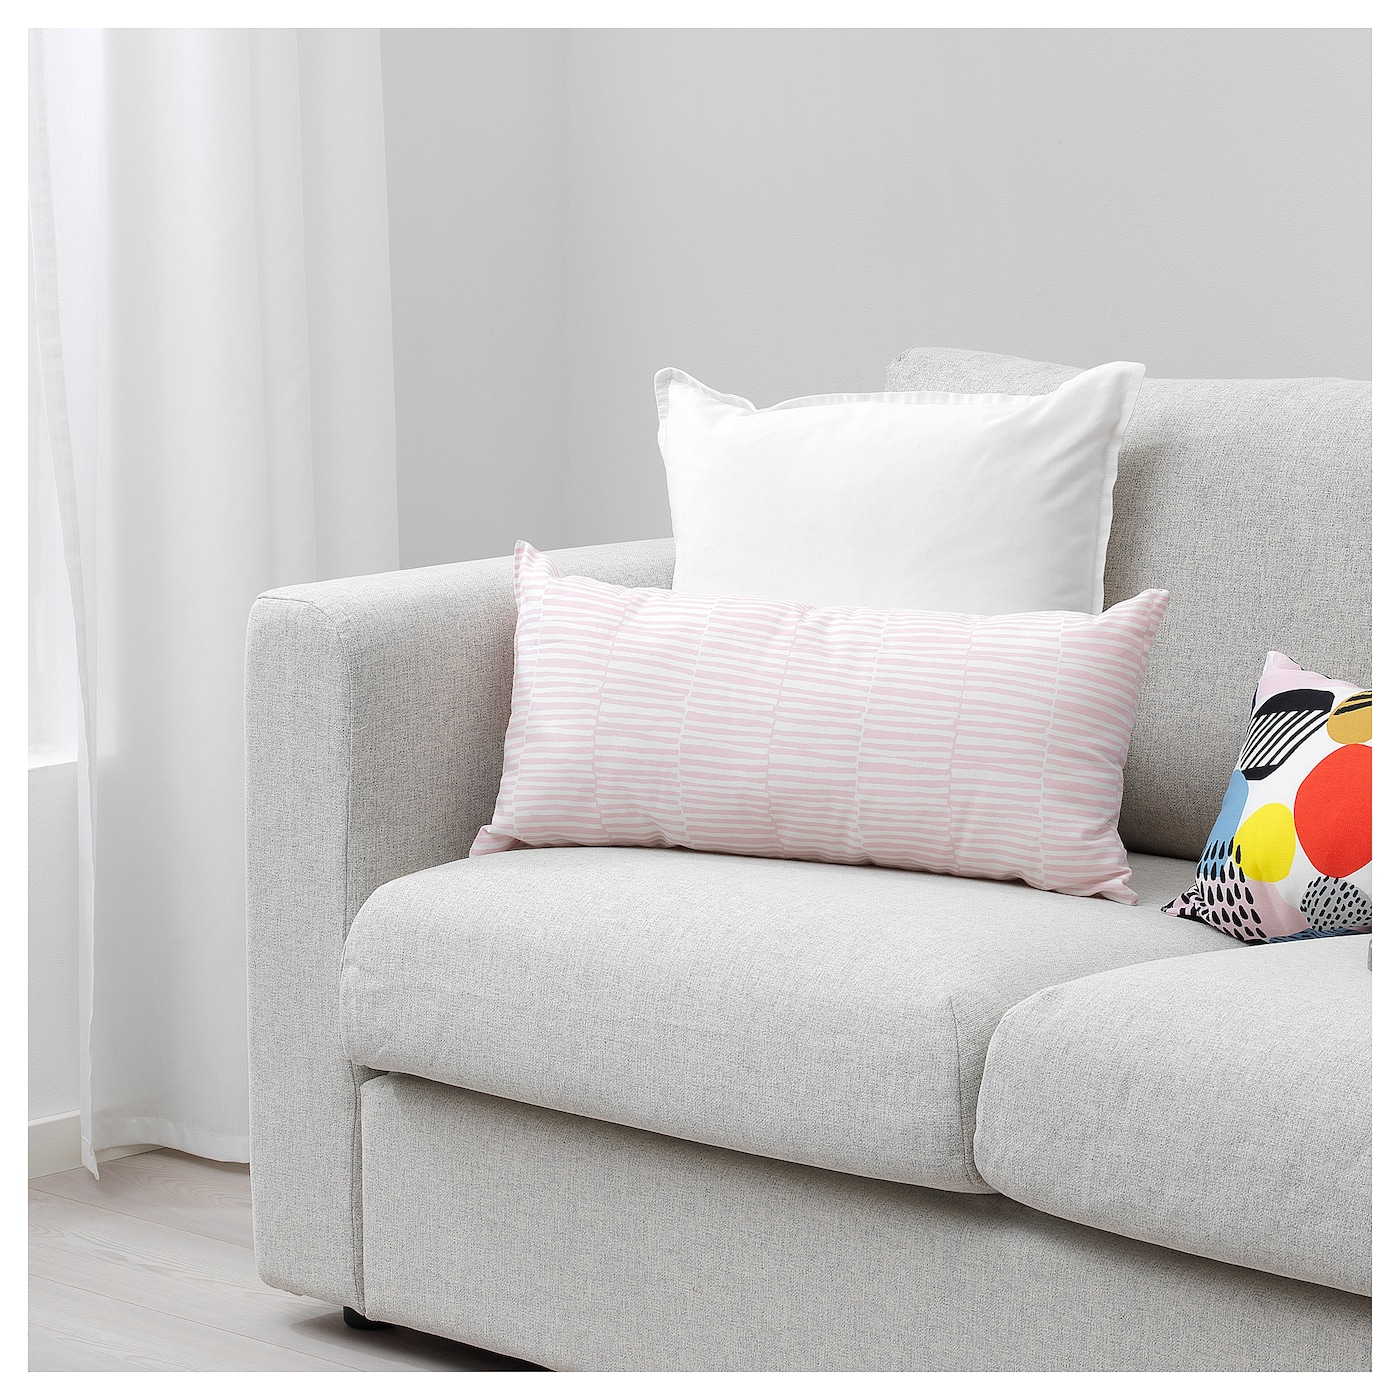 IKEA VENDLA cushion The polyester filling holds its shape and gives your body soft support.